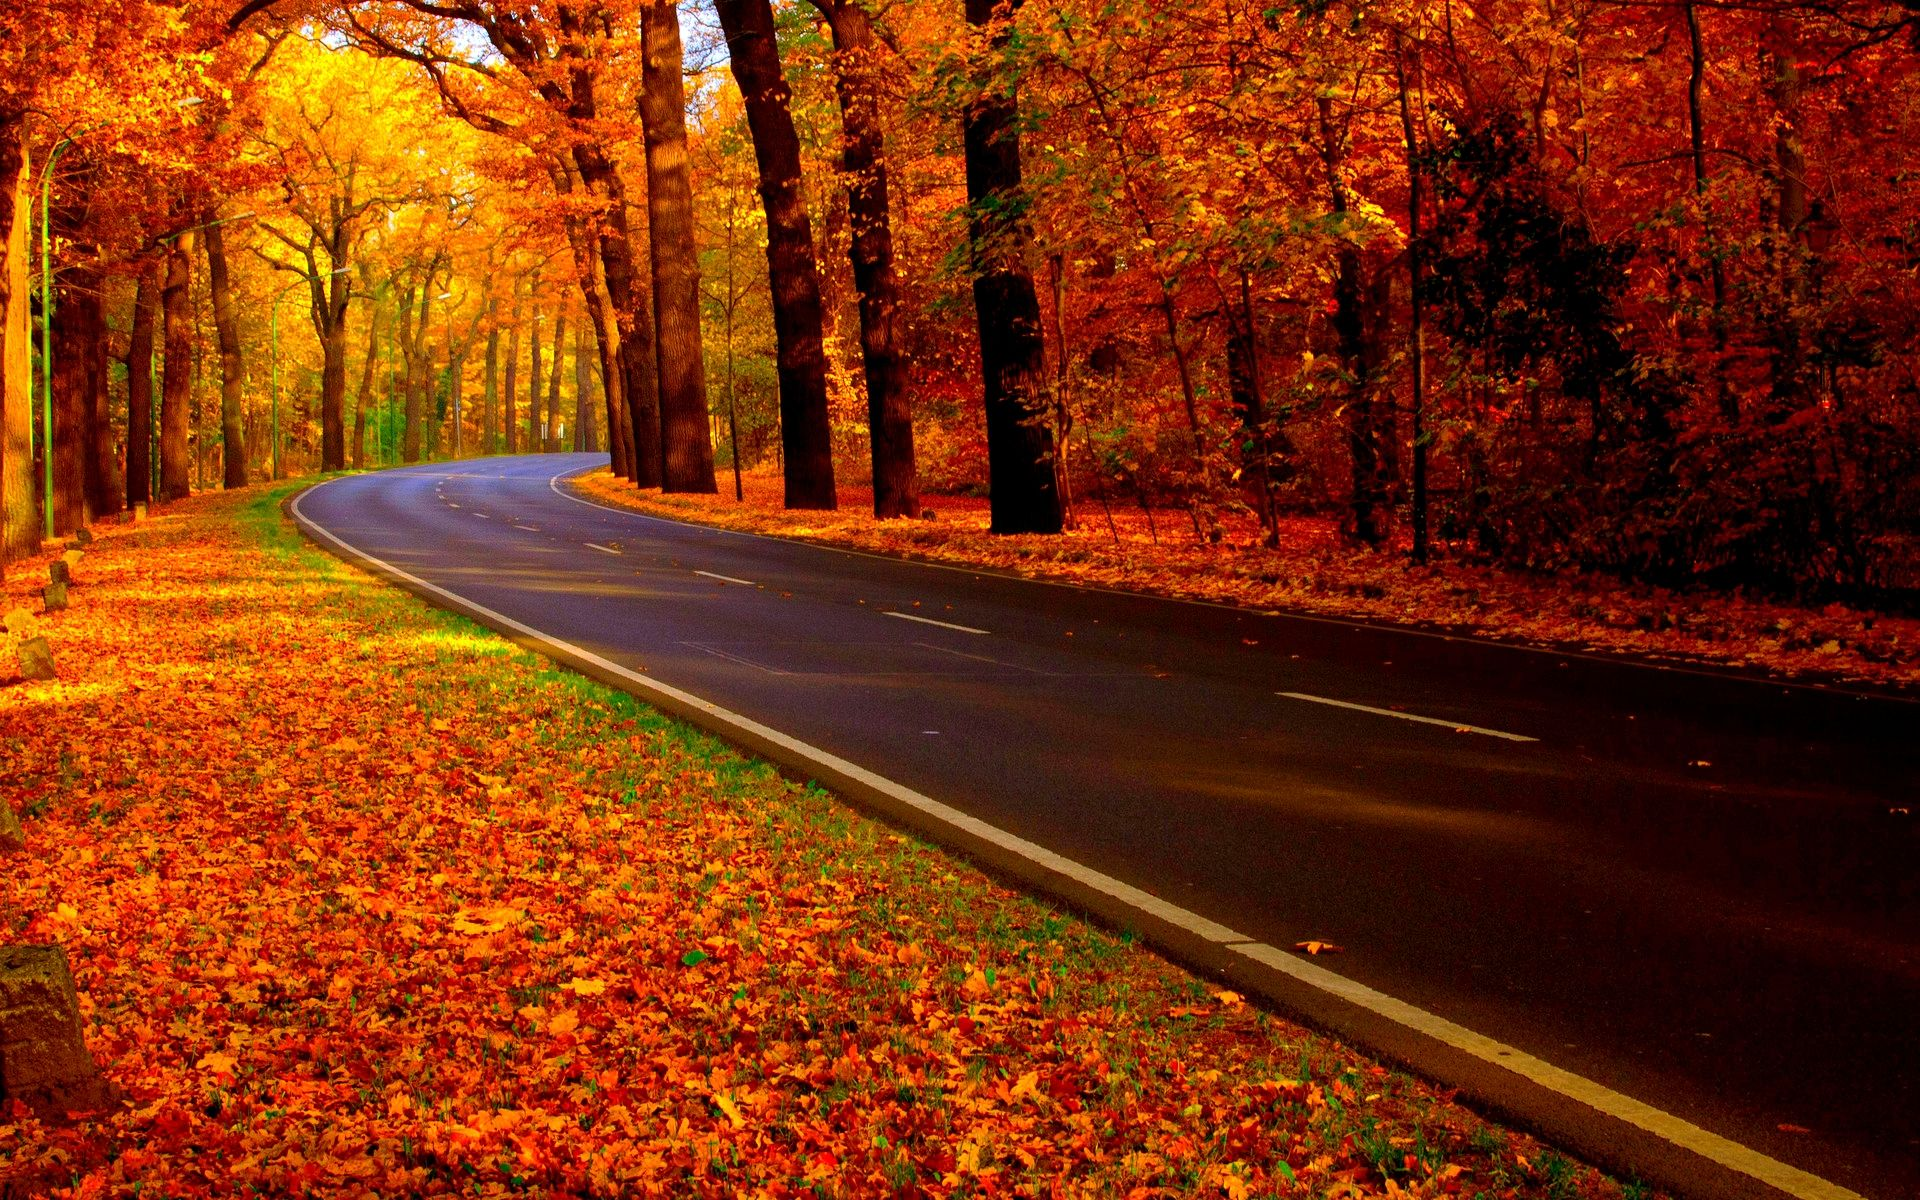 Autumn Road Uploaded To CureZone By Folliculitis On